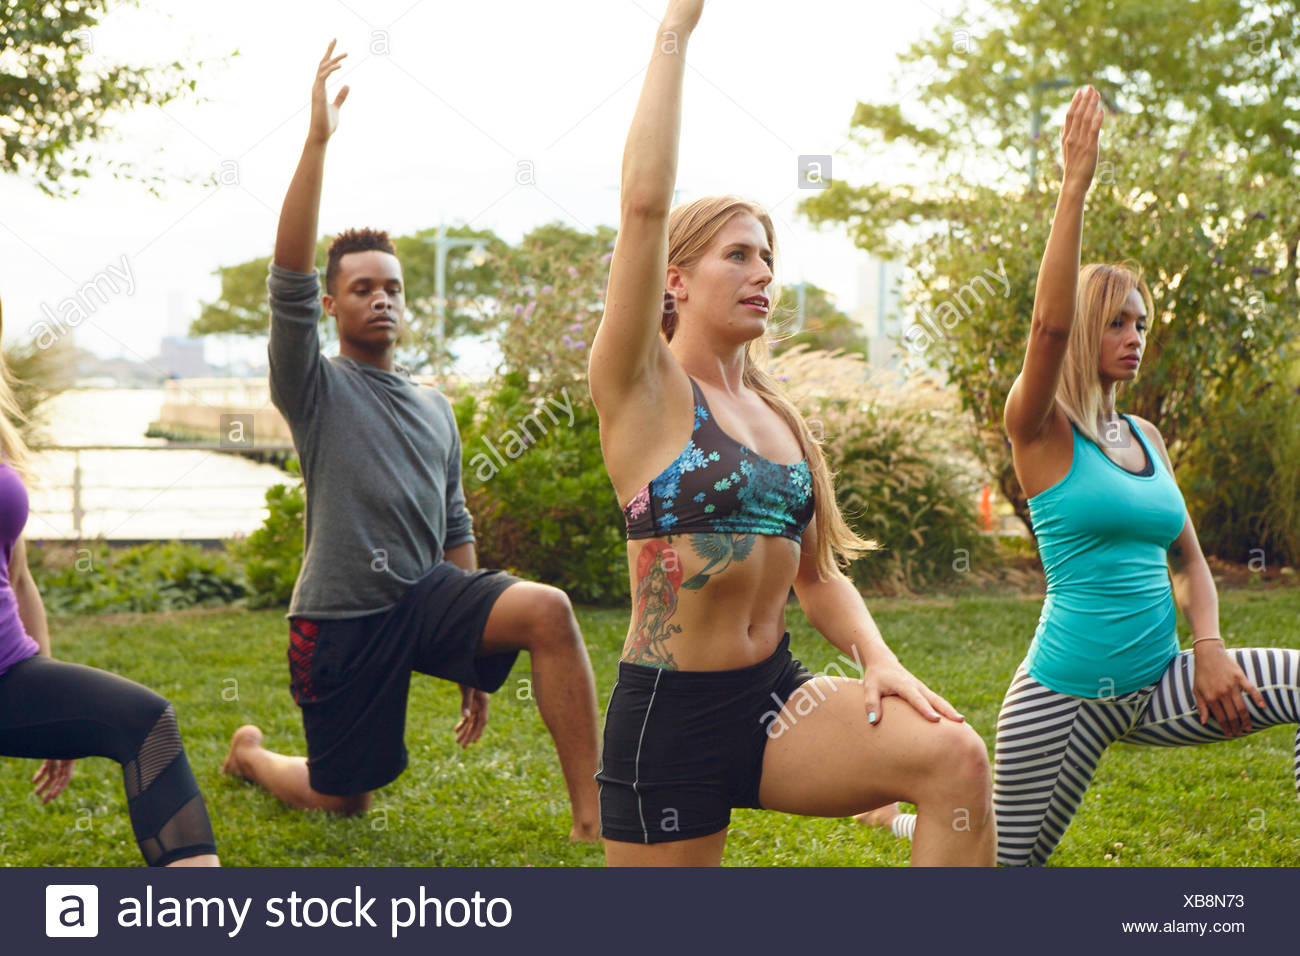 Men and women practicing yoga pose on one knee in park - Stock Image